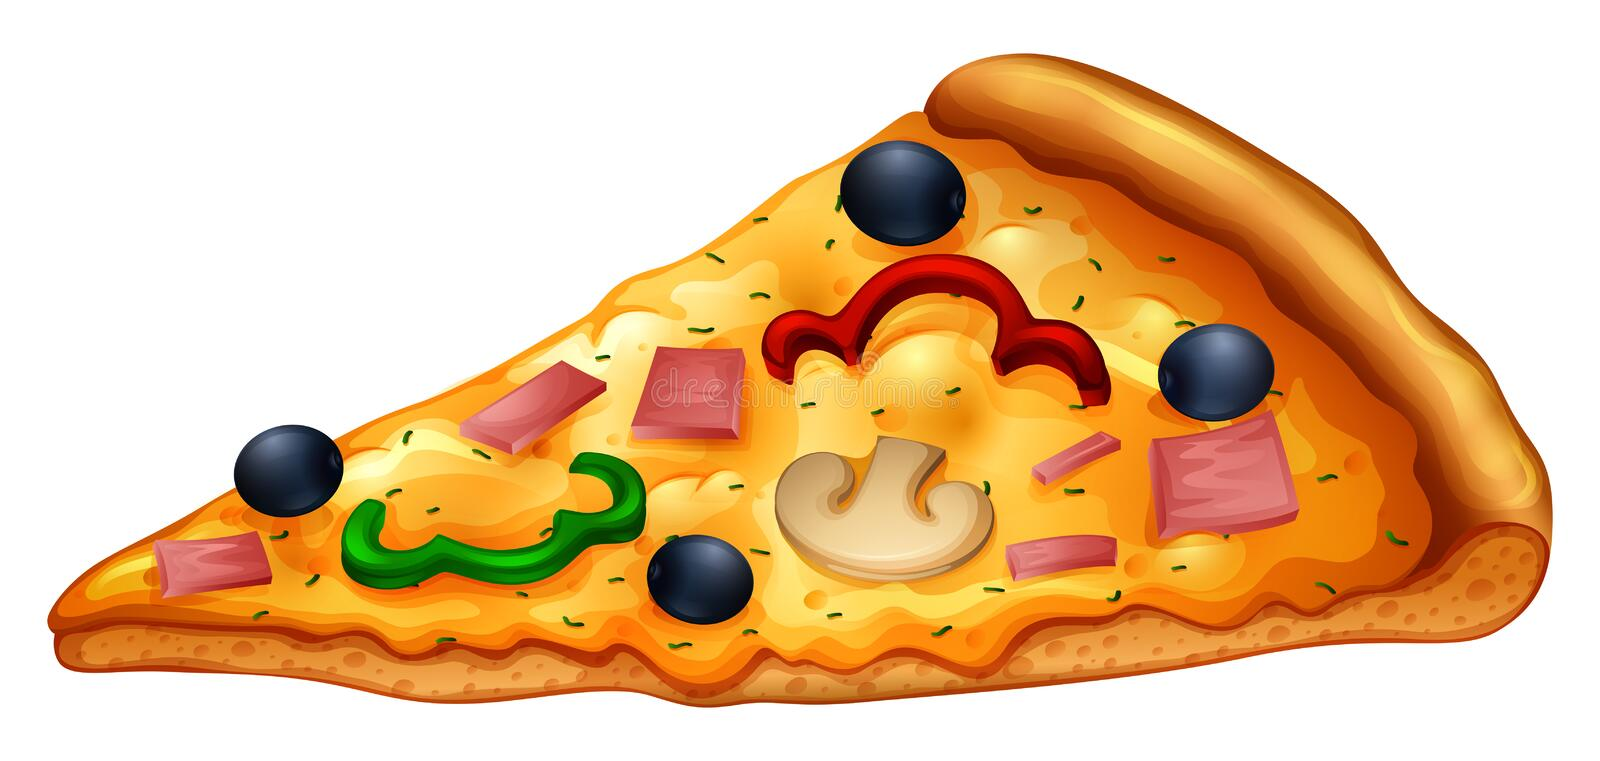 Slice of pizza on white stock vector. Illustration of ...